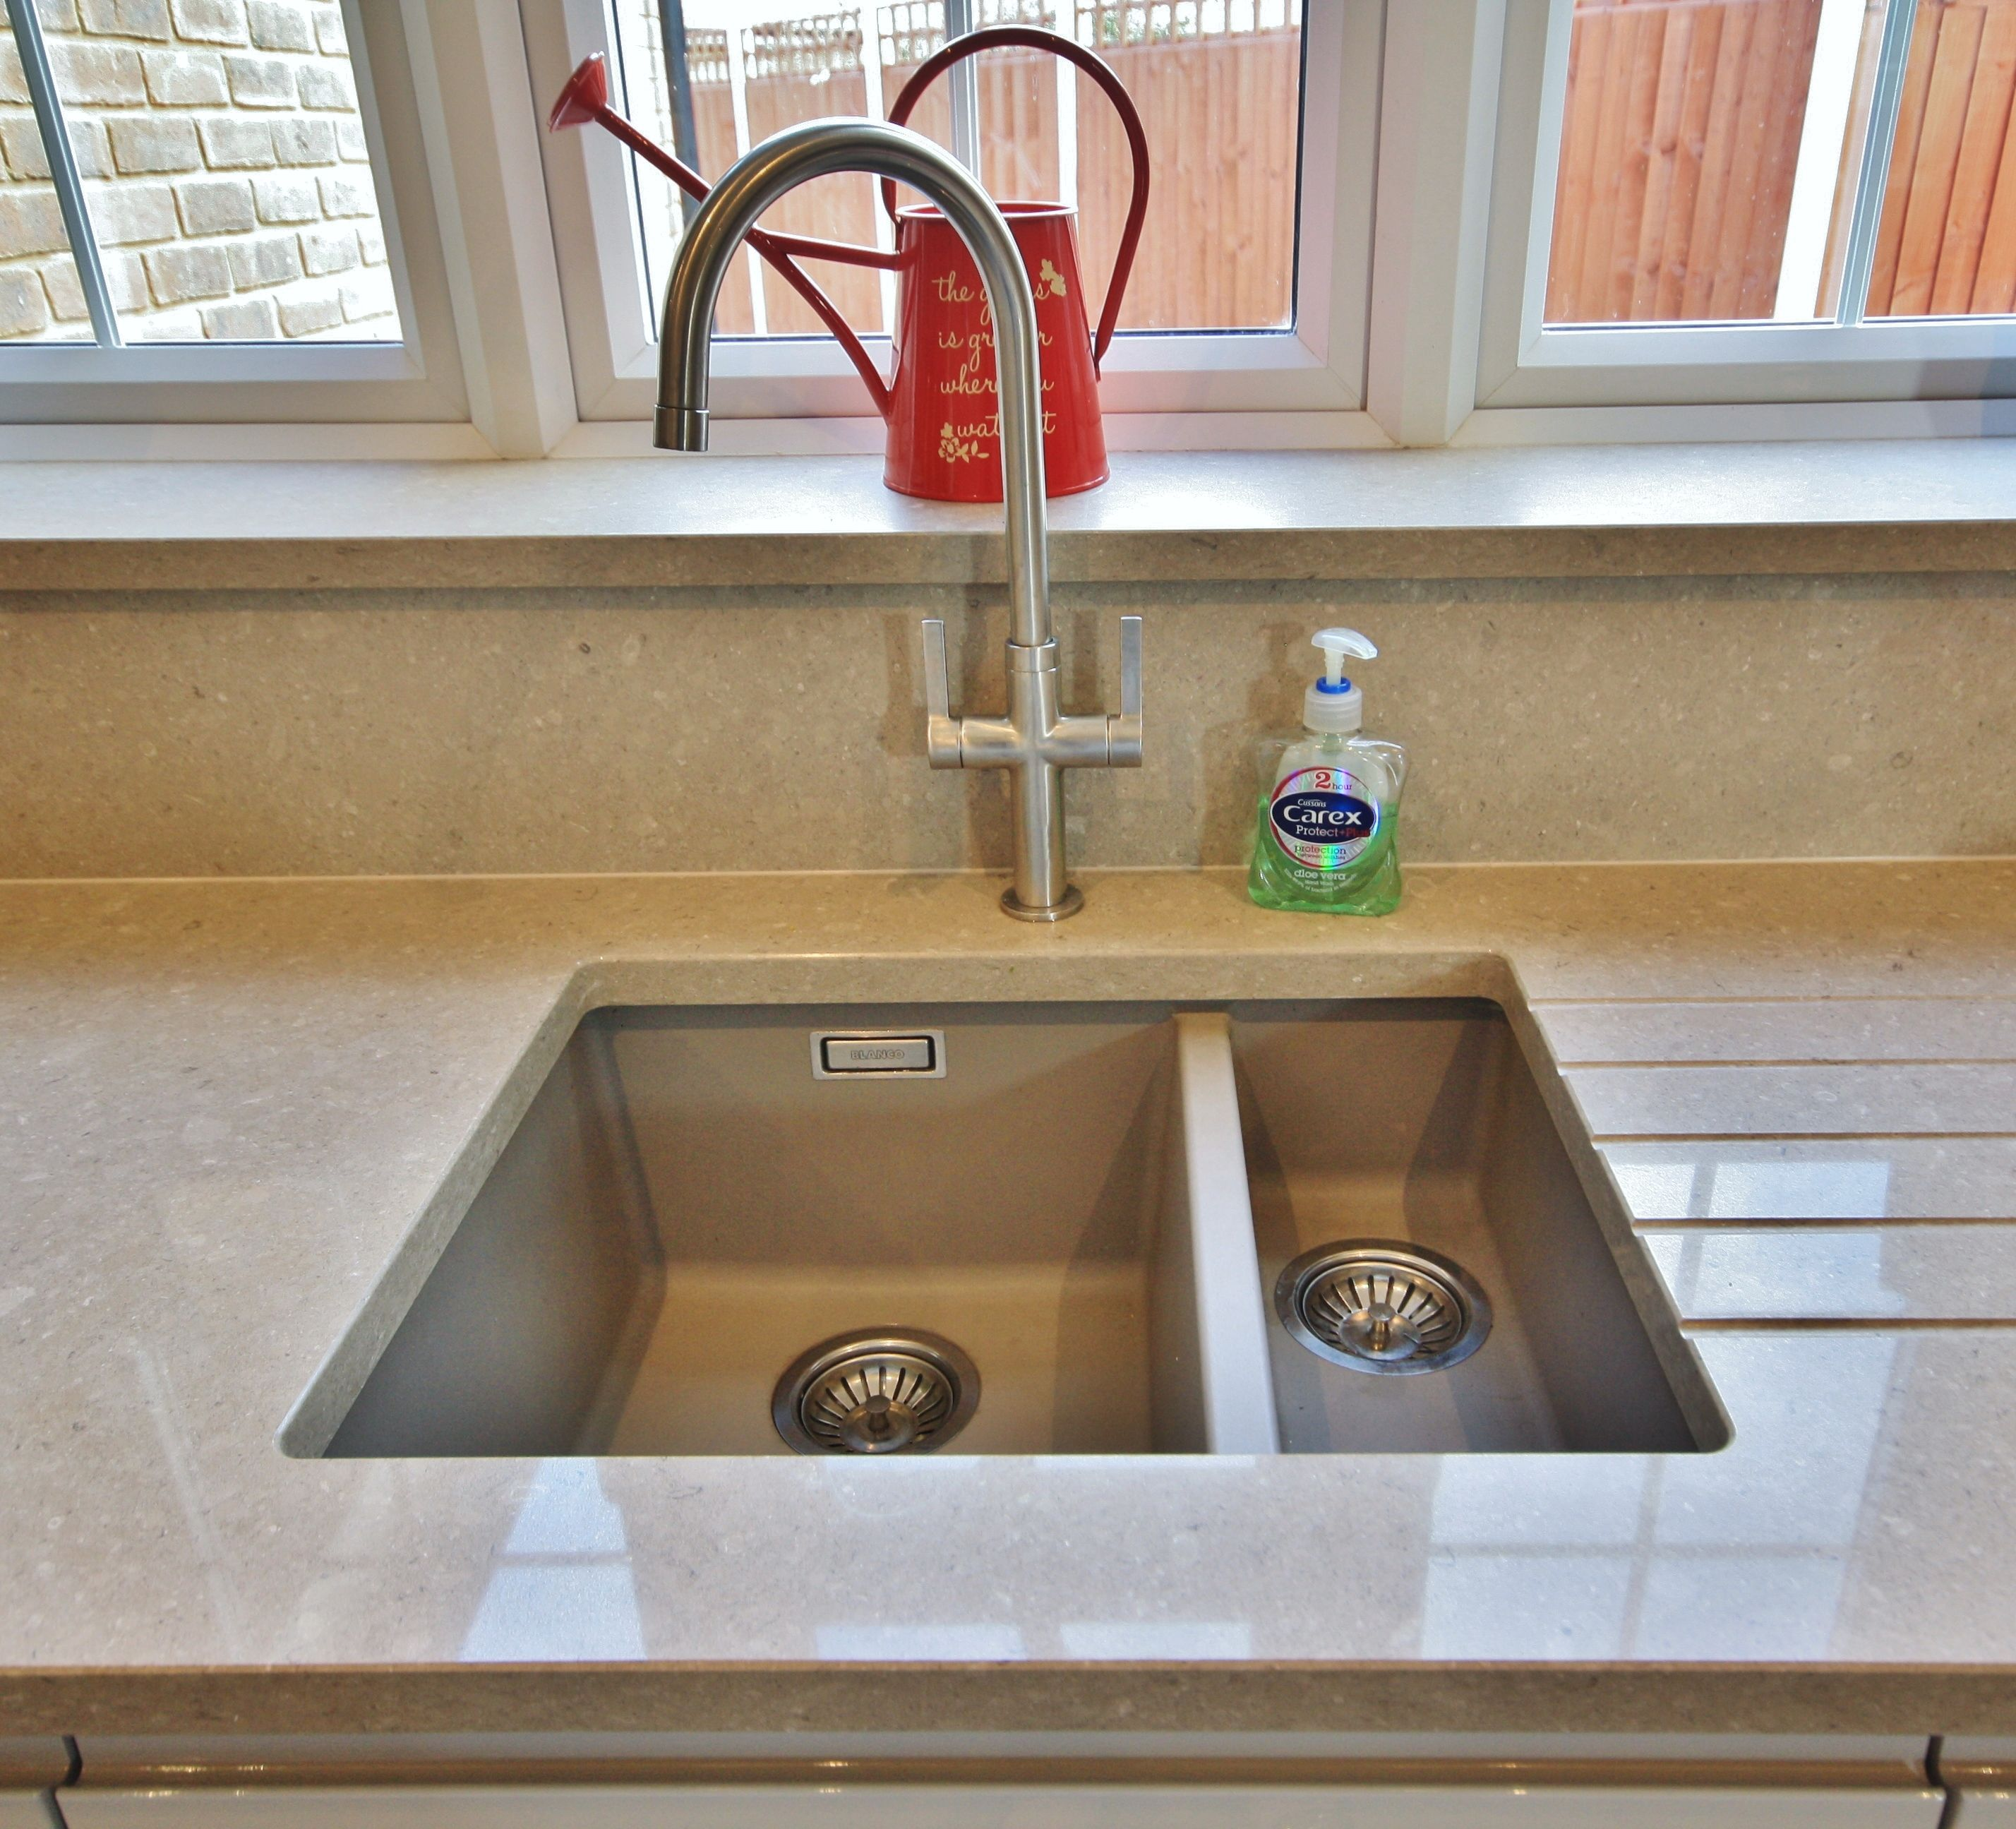 Silestone integrity sink with recess drainer - Blanco Under Mounted Sink With Drainer Grooves On The Right Hand Side Designed Supplied And Installed By Kitchencraft Essex